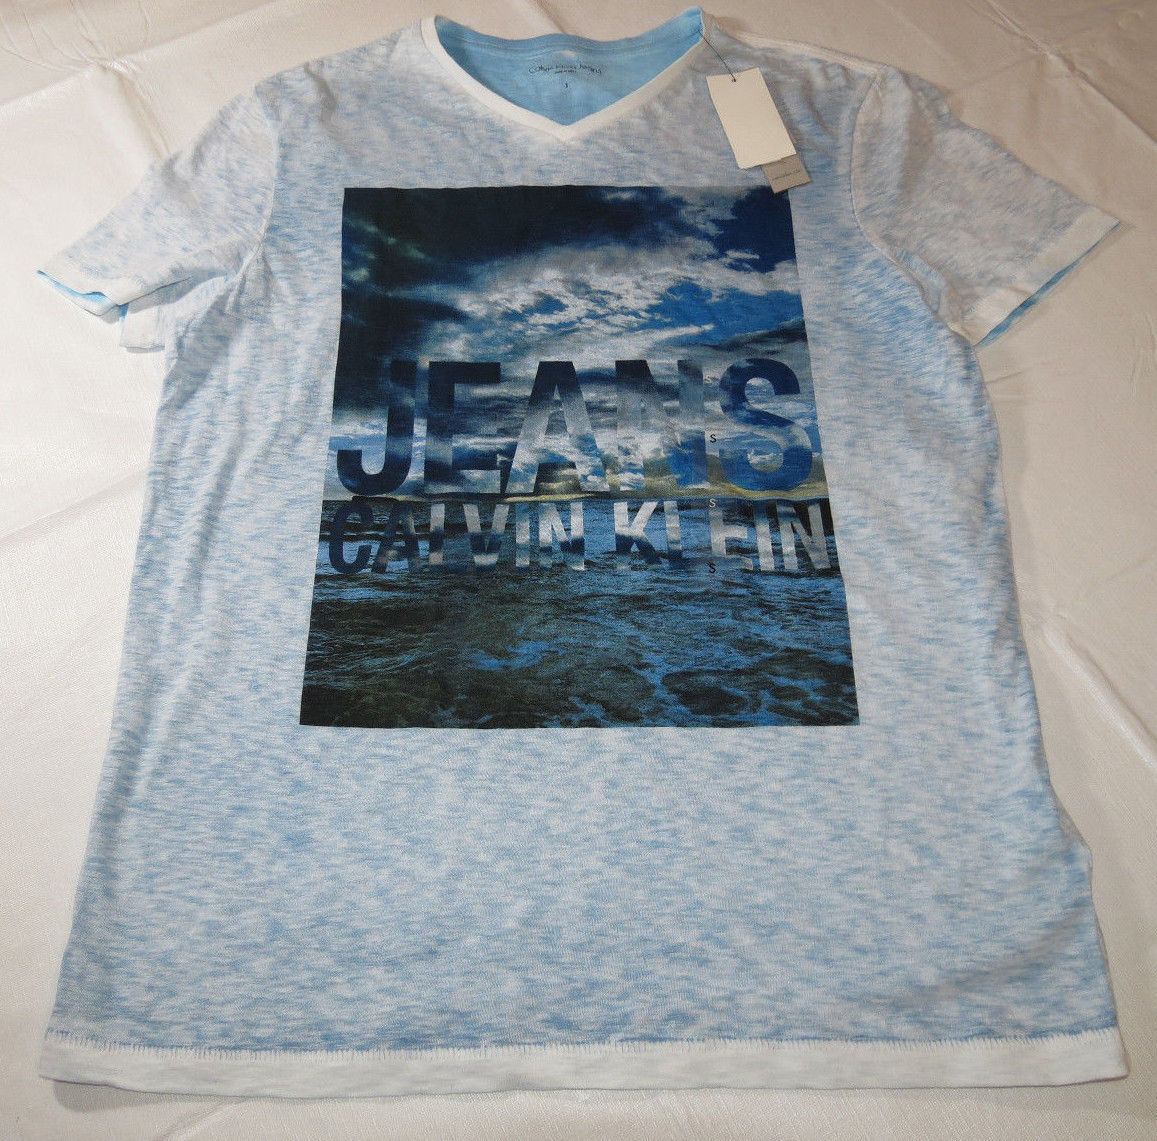 Primary image for Calvin Klein Jeans Mens short sleeve t shirt S small 4126231 Wild Blue 489